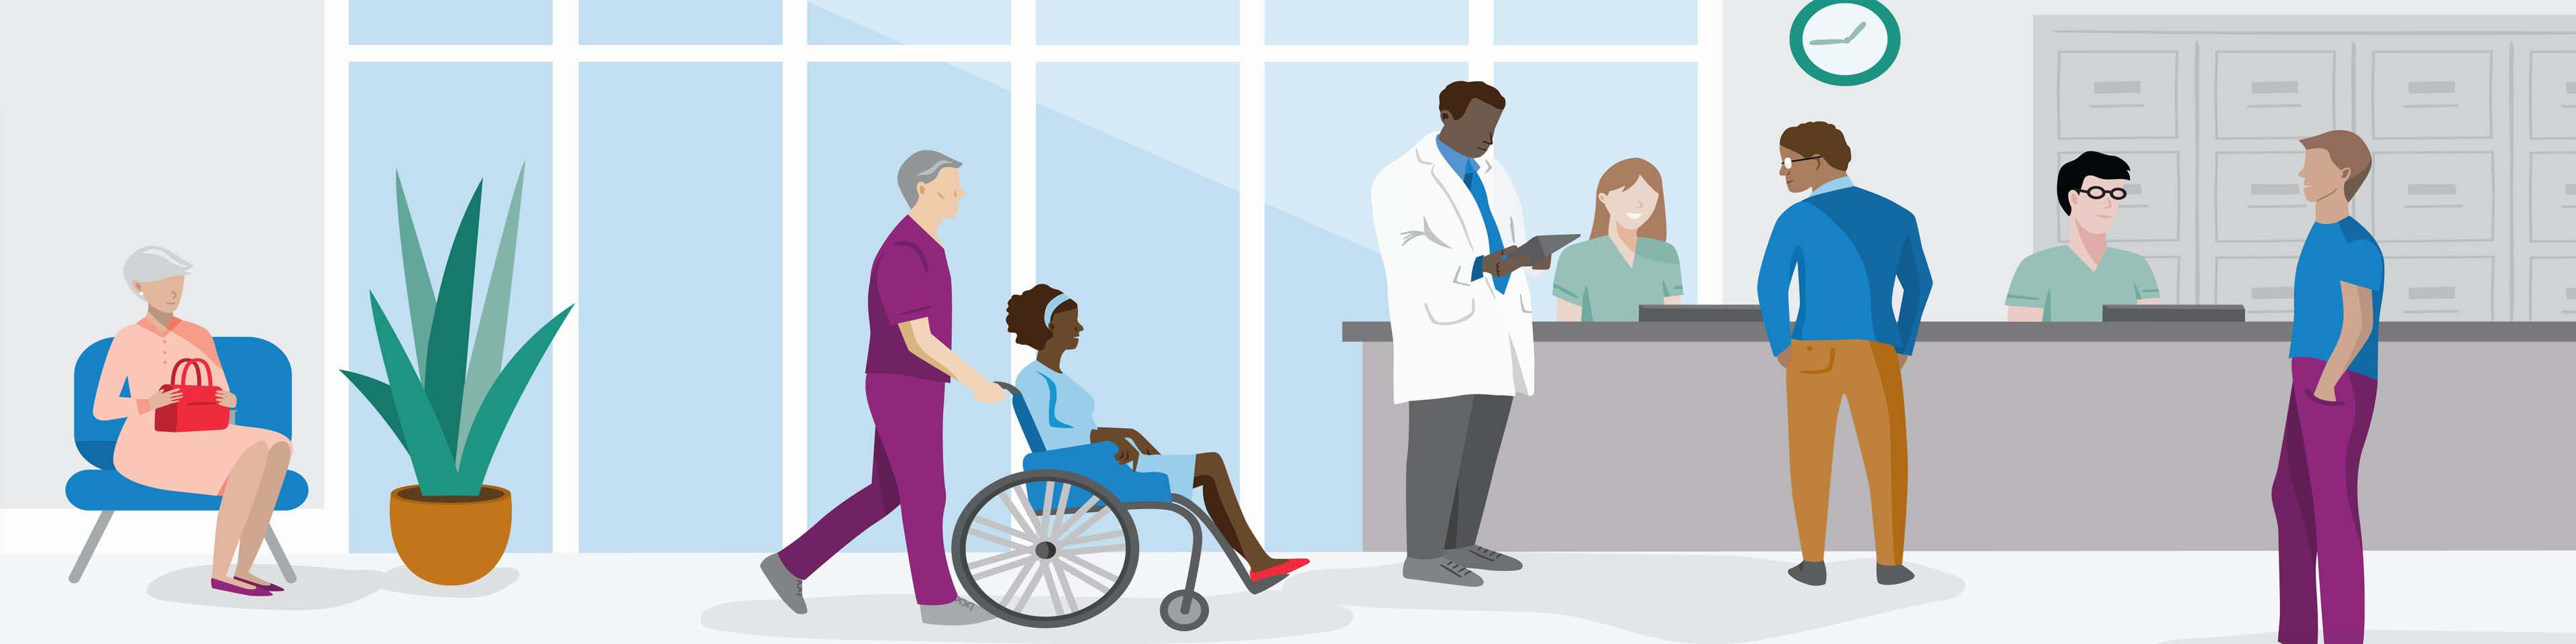 illustration of people in medical facility lobby